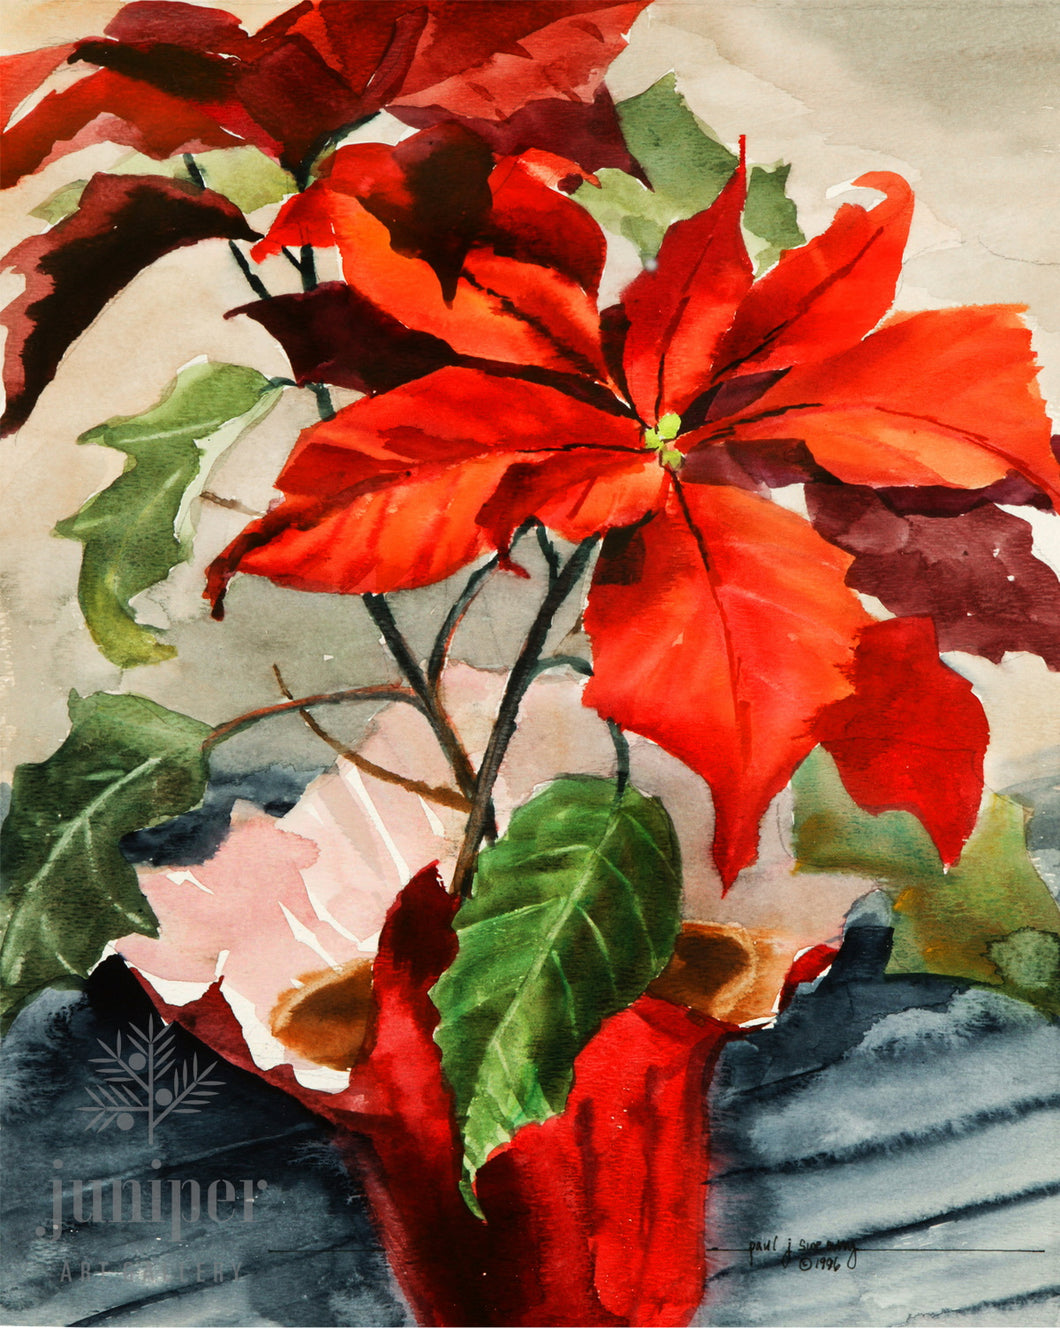 Poinsettia, reproduction from original watercolor by Paul J Sweany